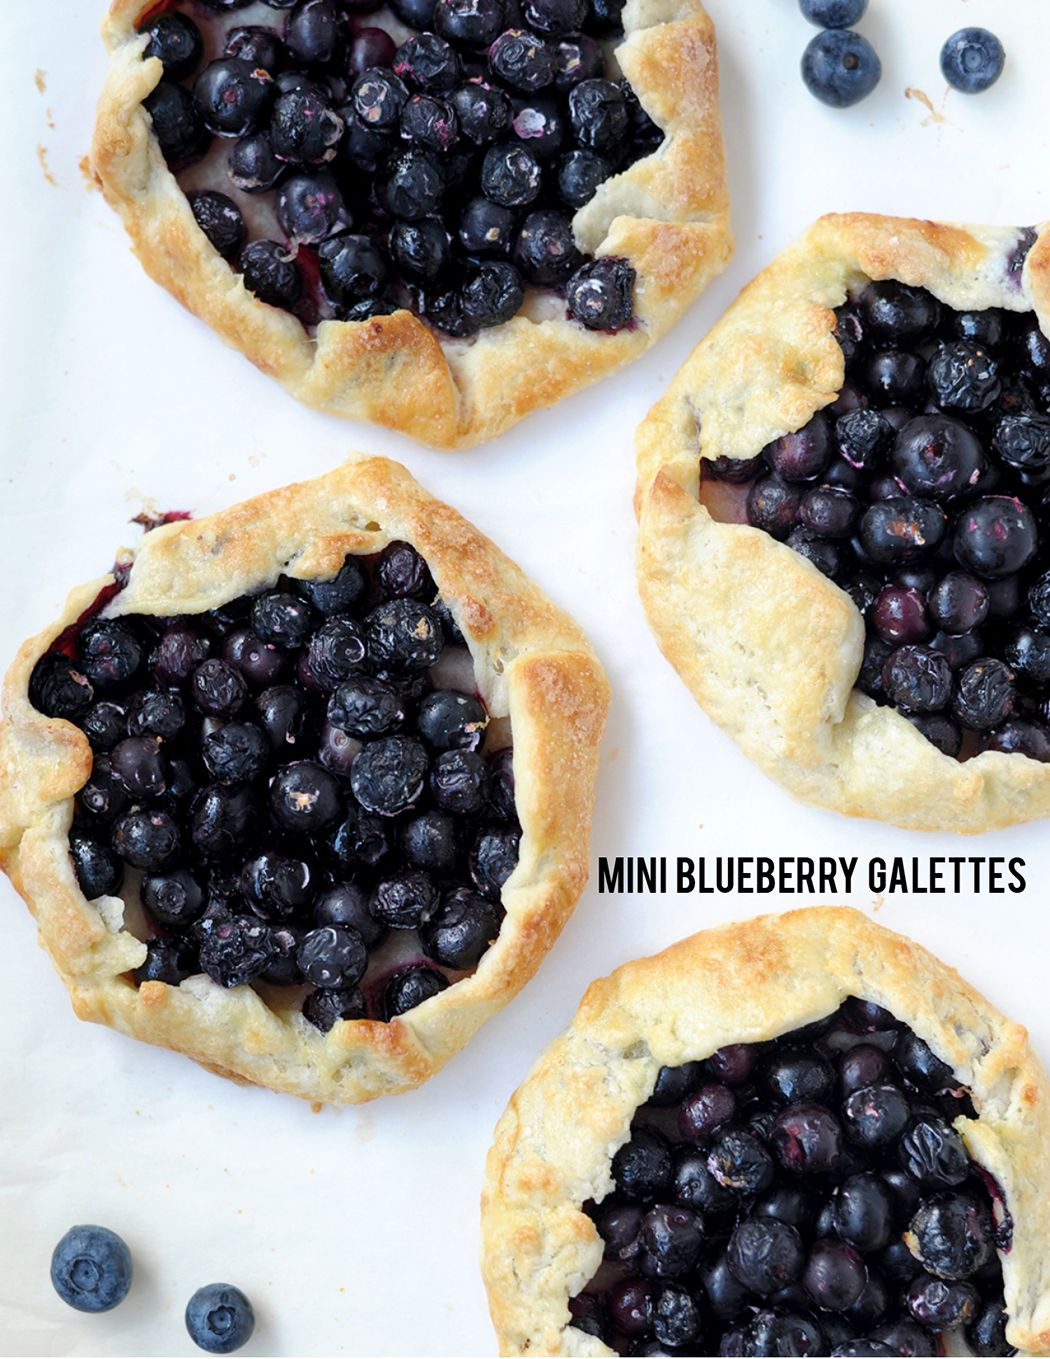 mini blueberry galettes recipe. so easy and so good!